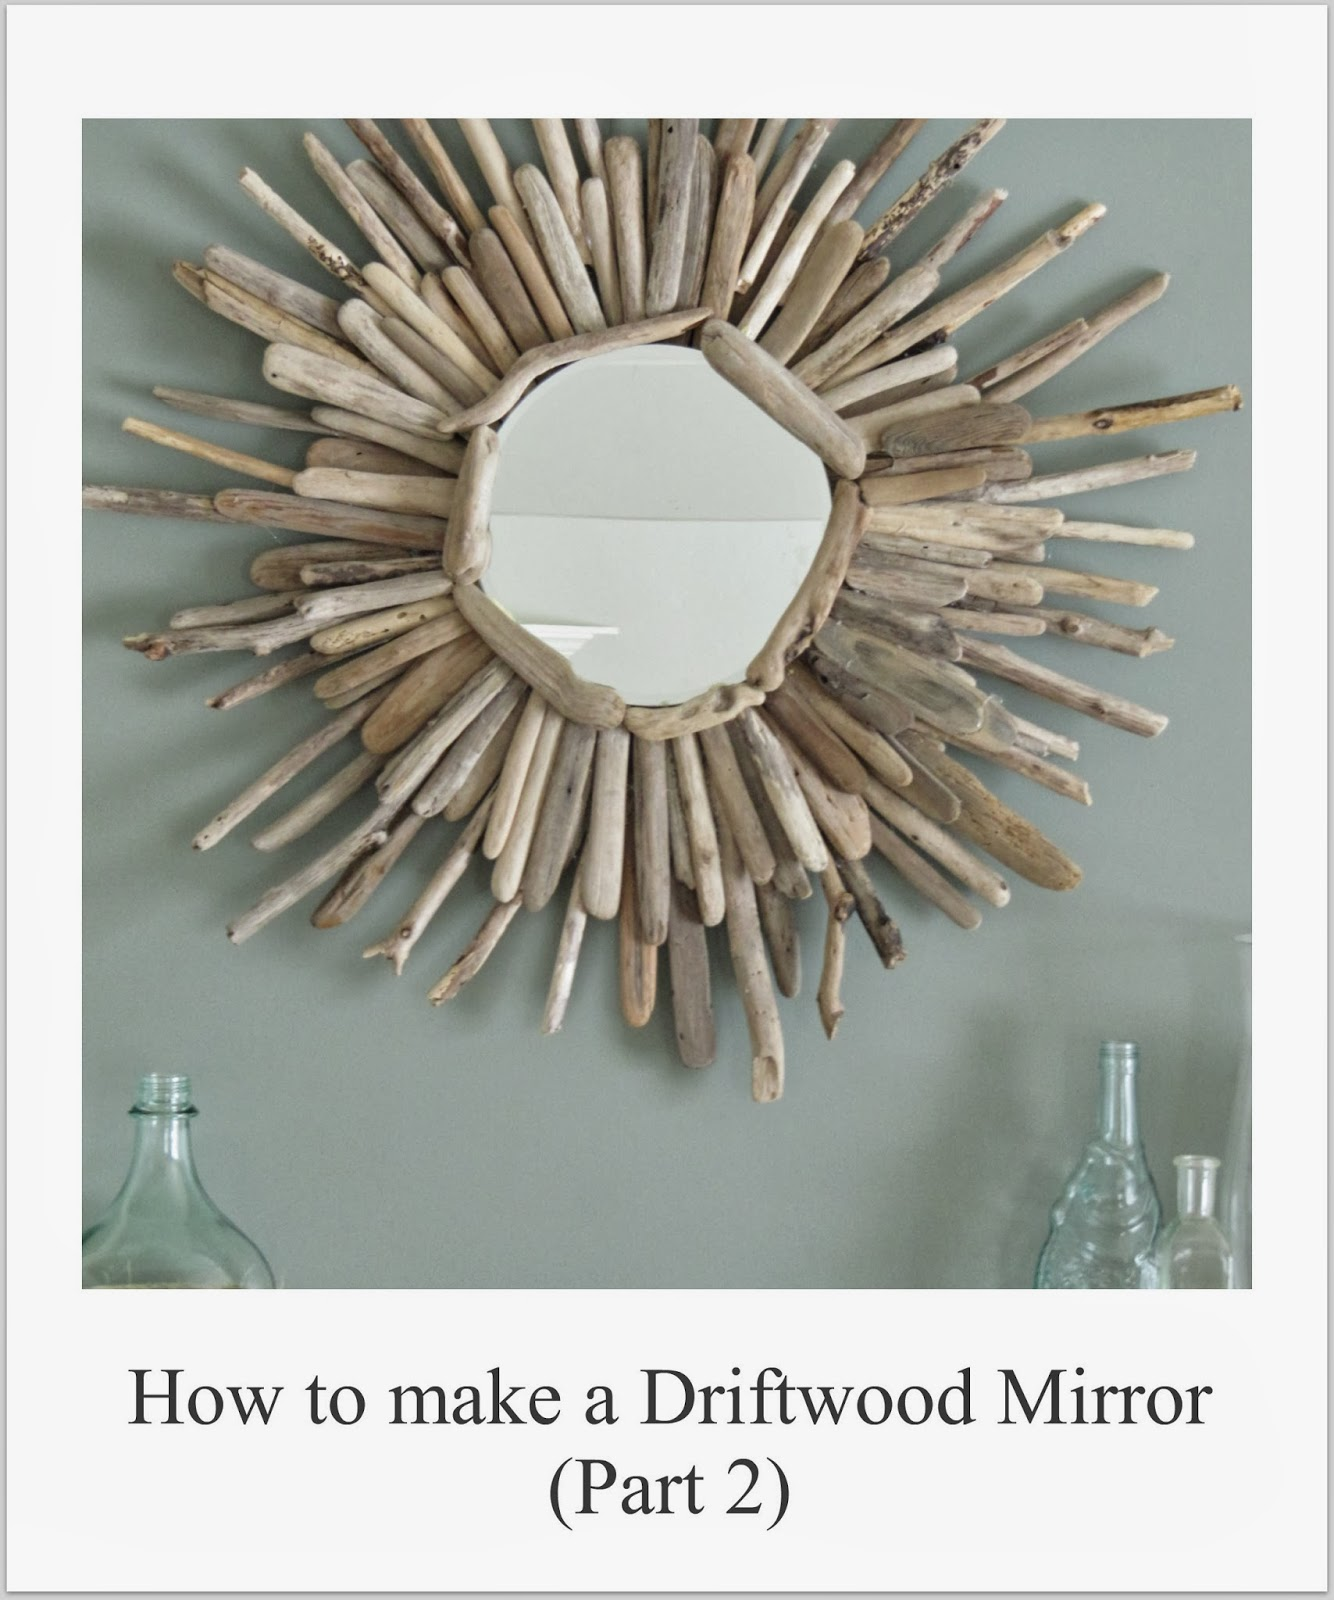 http://www.thewickerhouse.blogspot.com/2014/02/how-to-make-driftwood-mirror-part-2.html